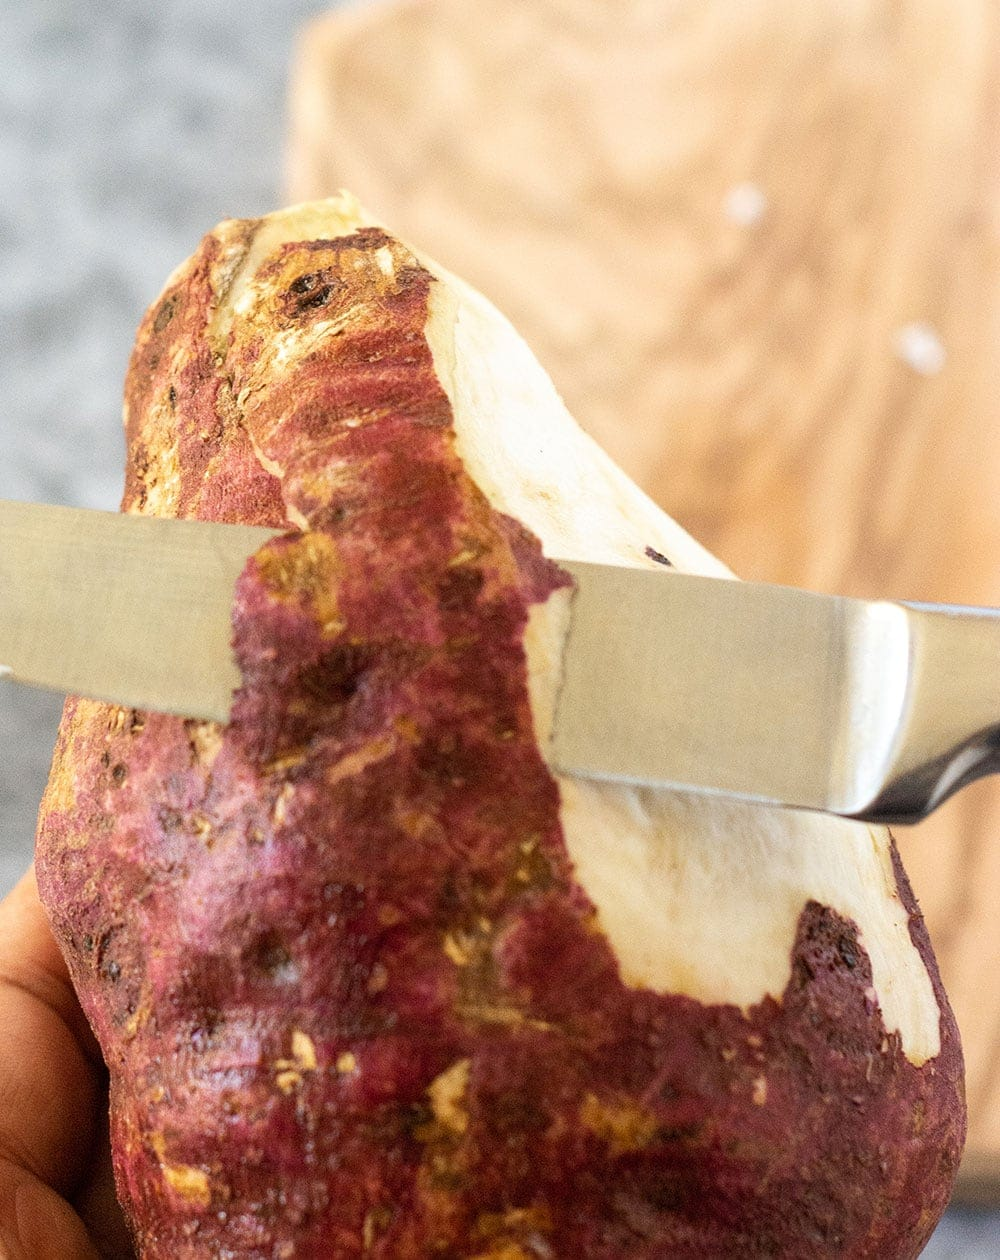 Sweet potato being peeled with a knife